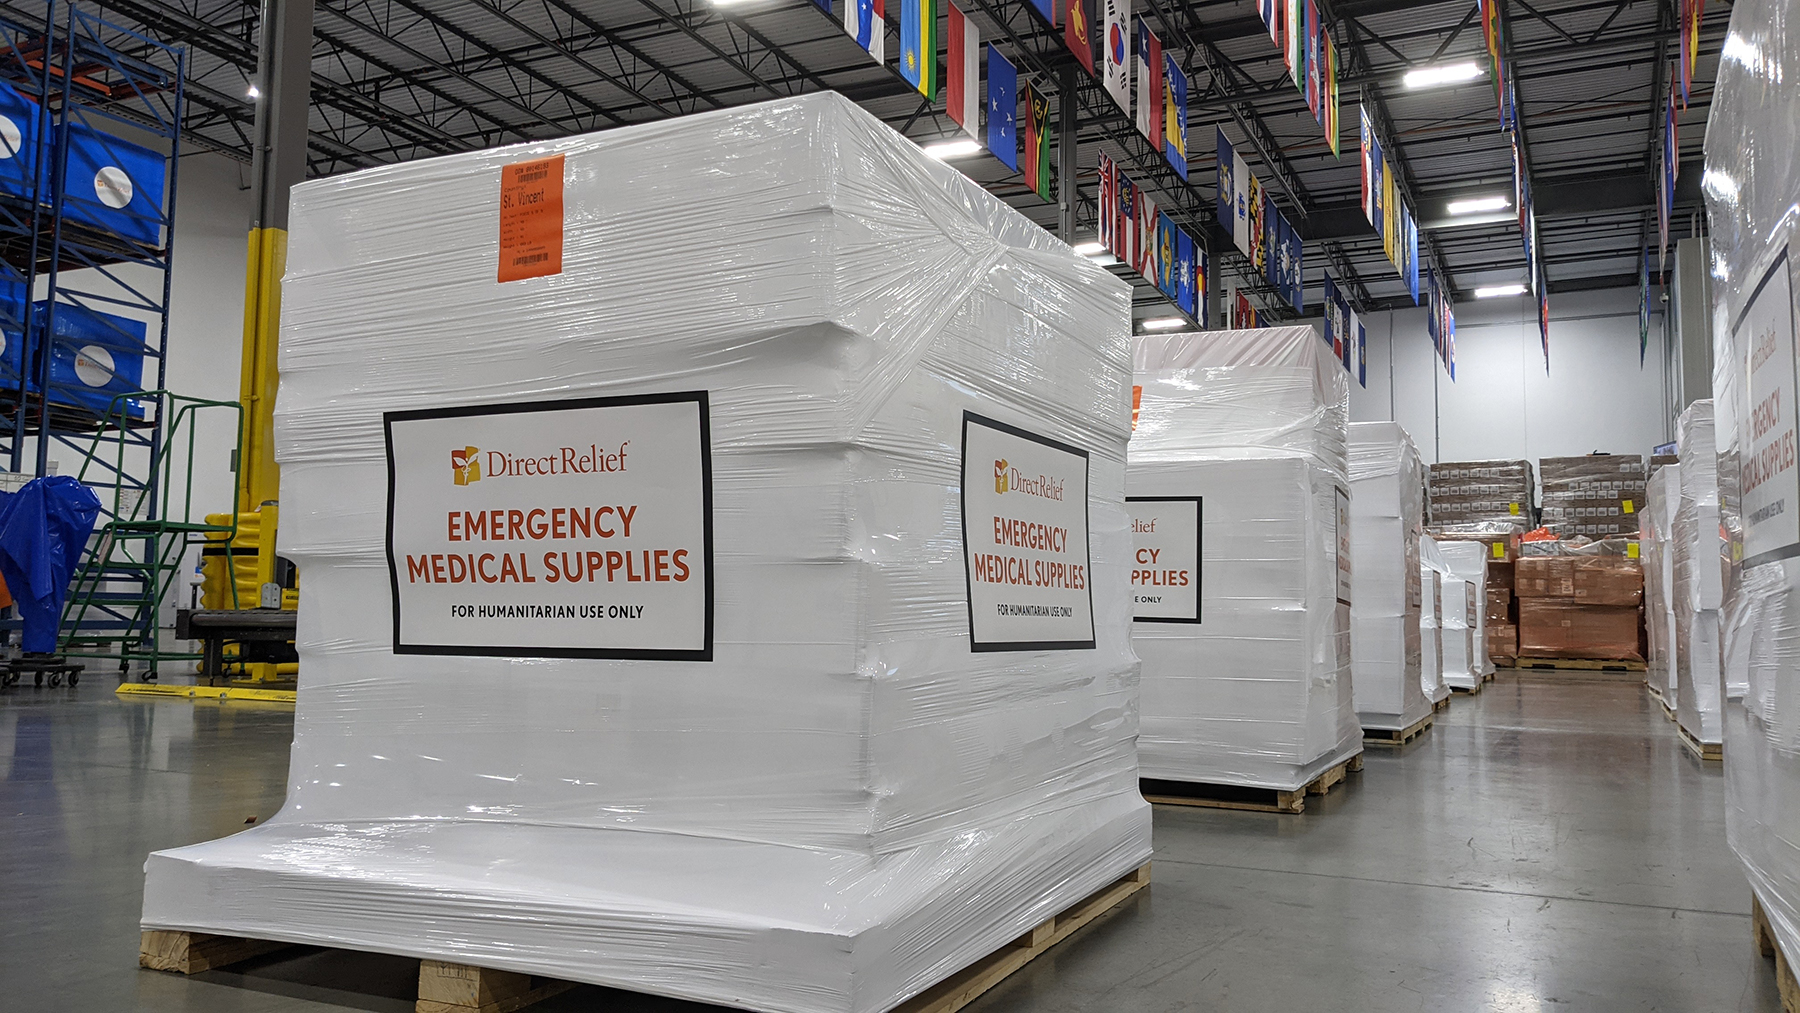 Emergency shipments of medical aid are staged for departure on April 12, 2021, at Direct Relief headquarters for those impacted by the volcanic eruption in St. Vincent in the Caribbean. (Tony Morain/Direct Relief)